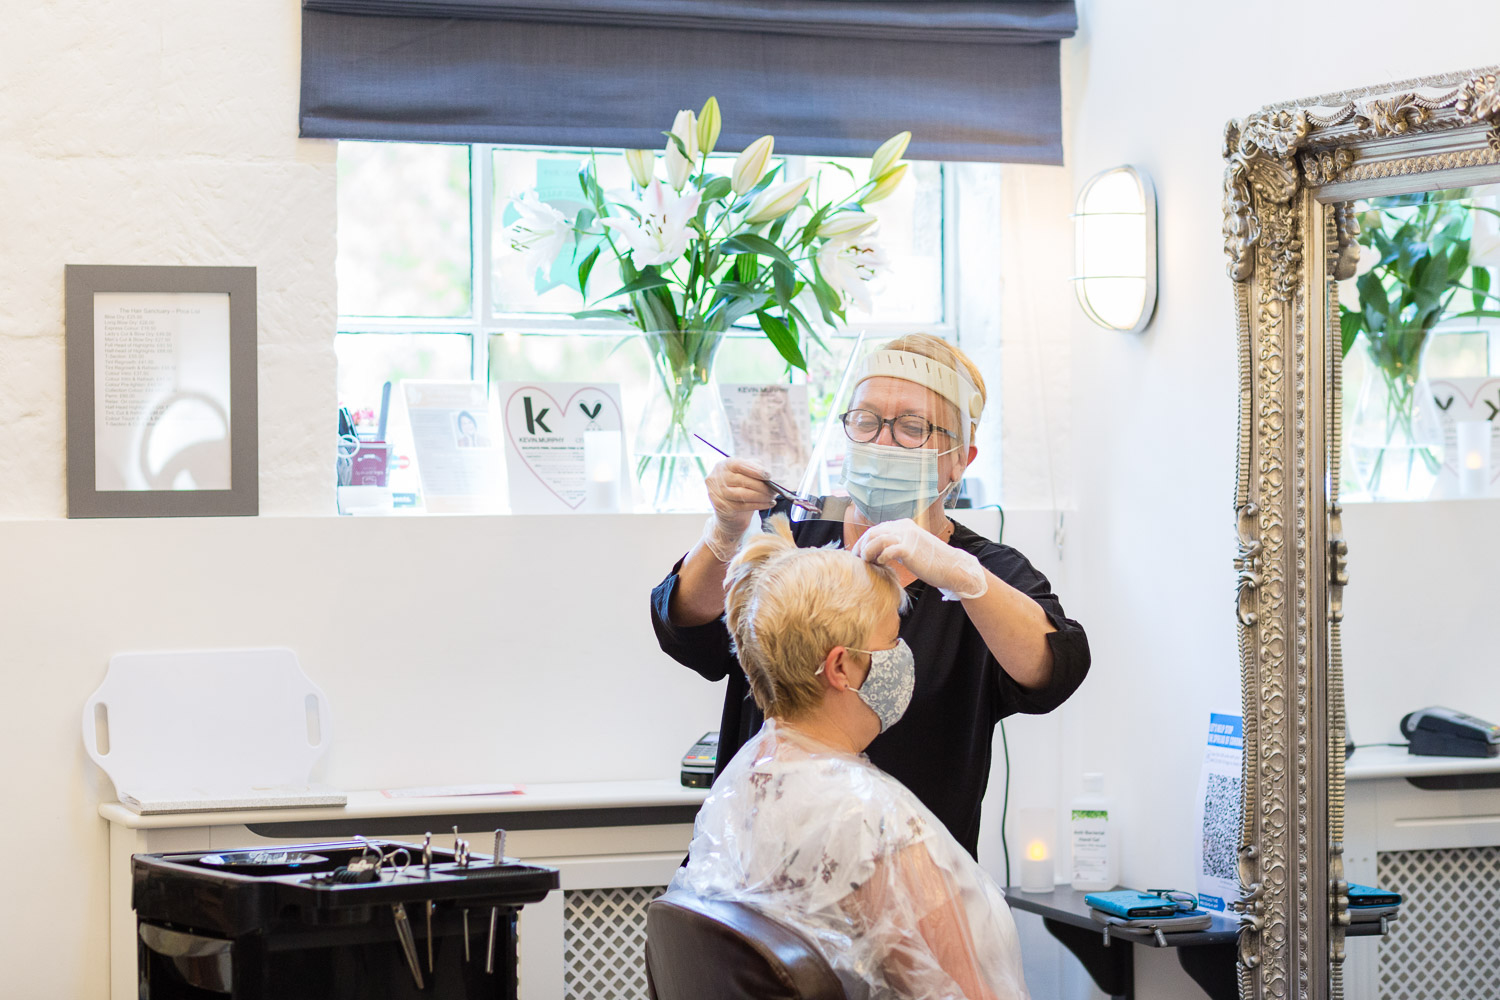 Are Trichologists hairdressers? What are the differences between a hairdresser and a trichologist?